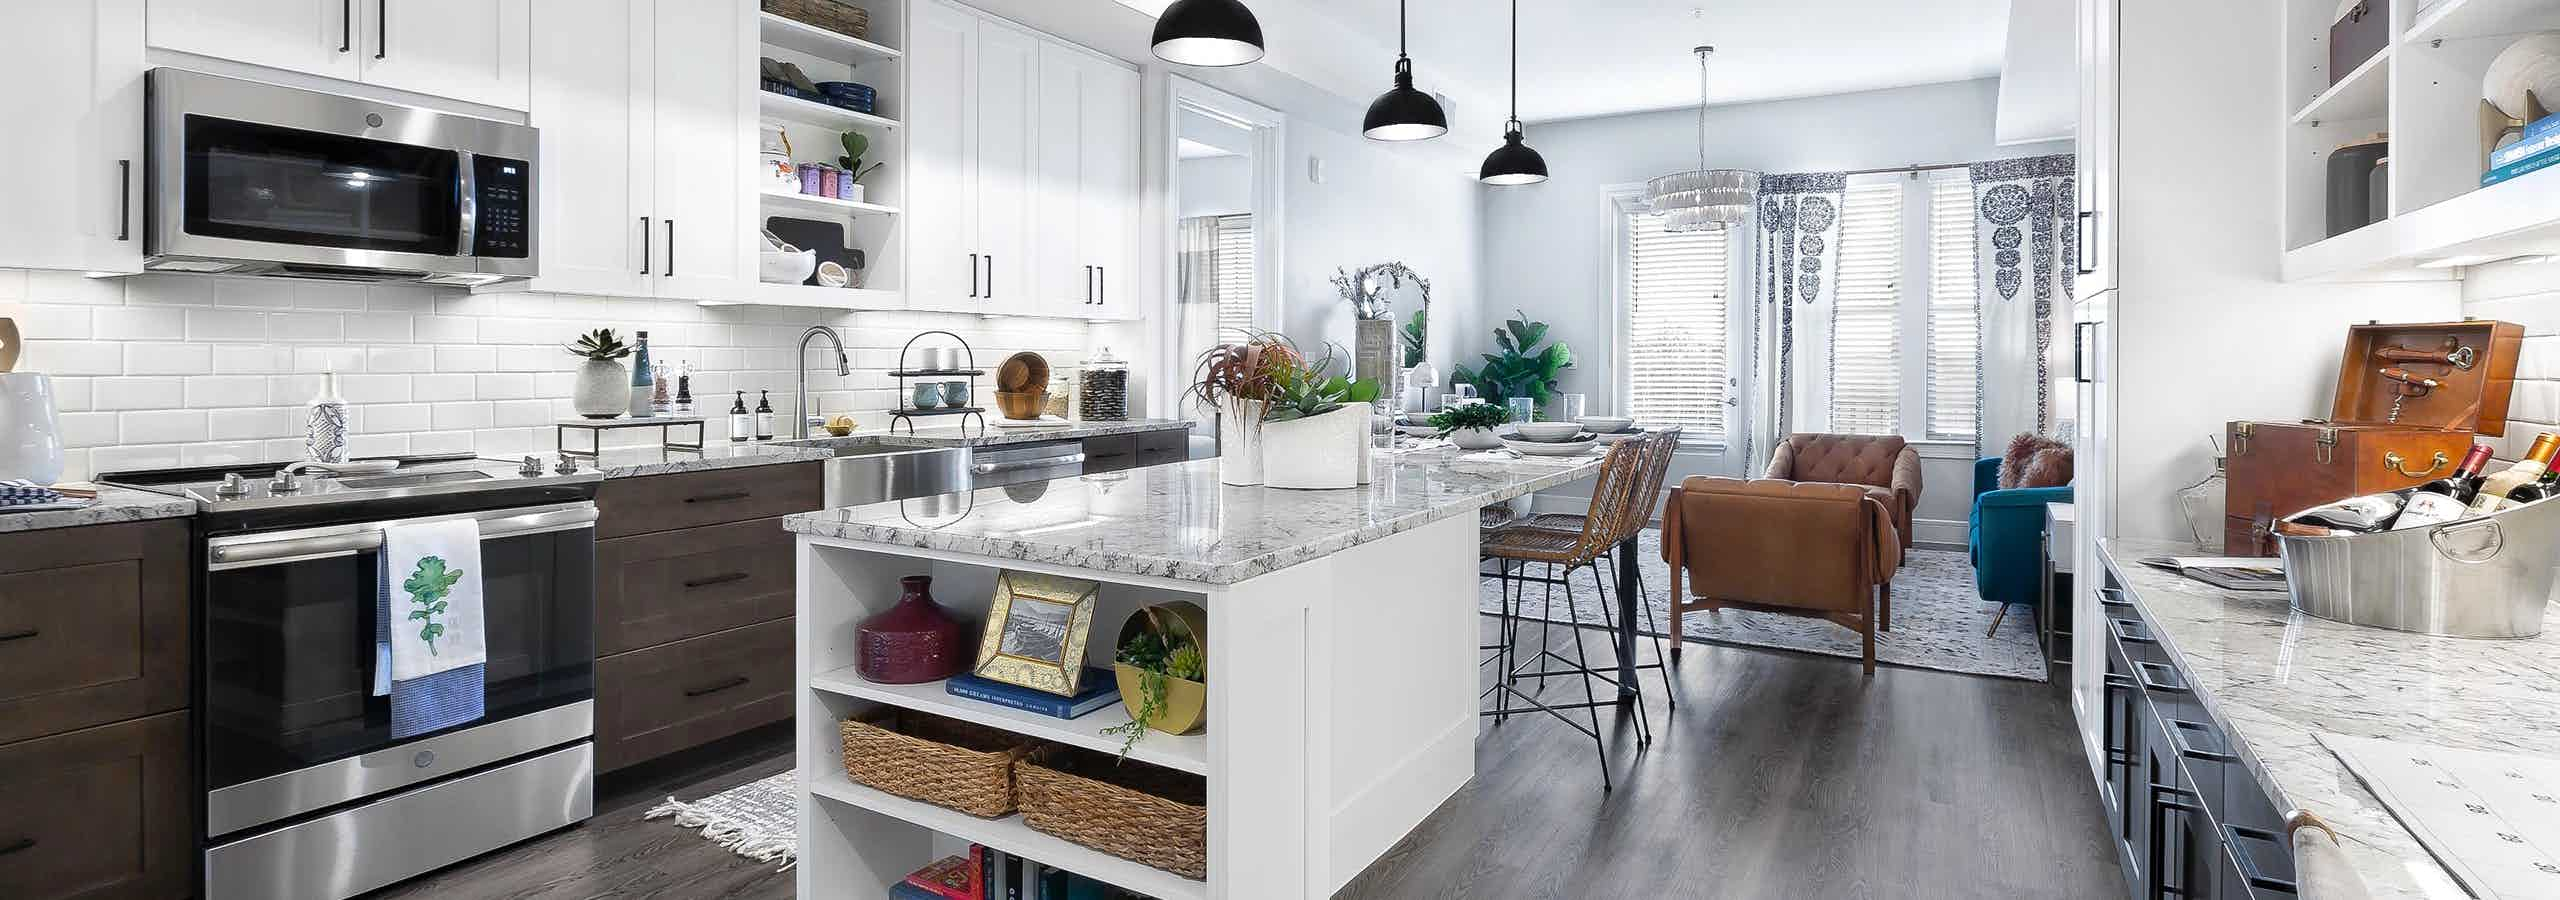 Island kitchen with stainless steel appliances